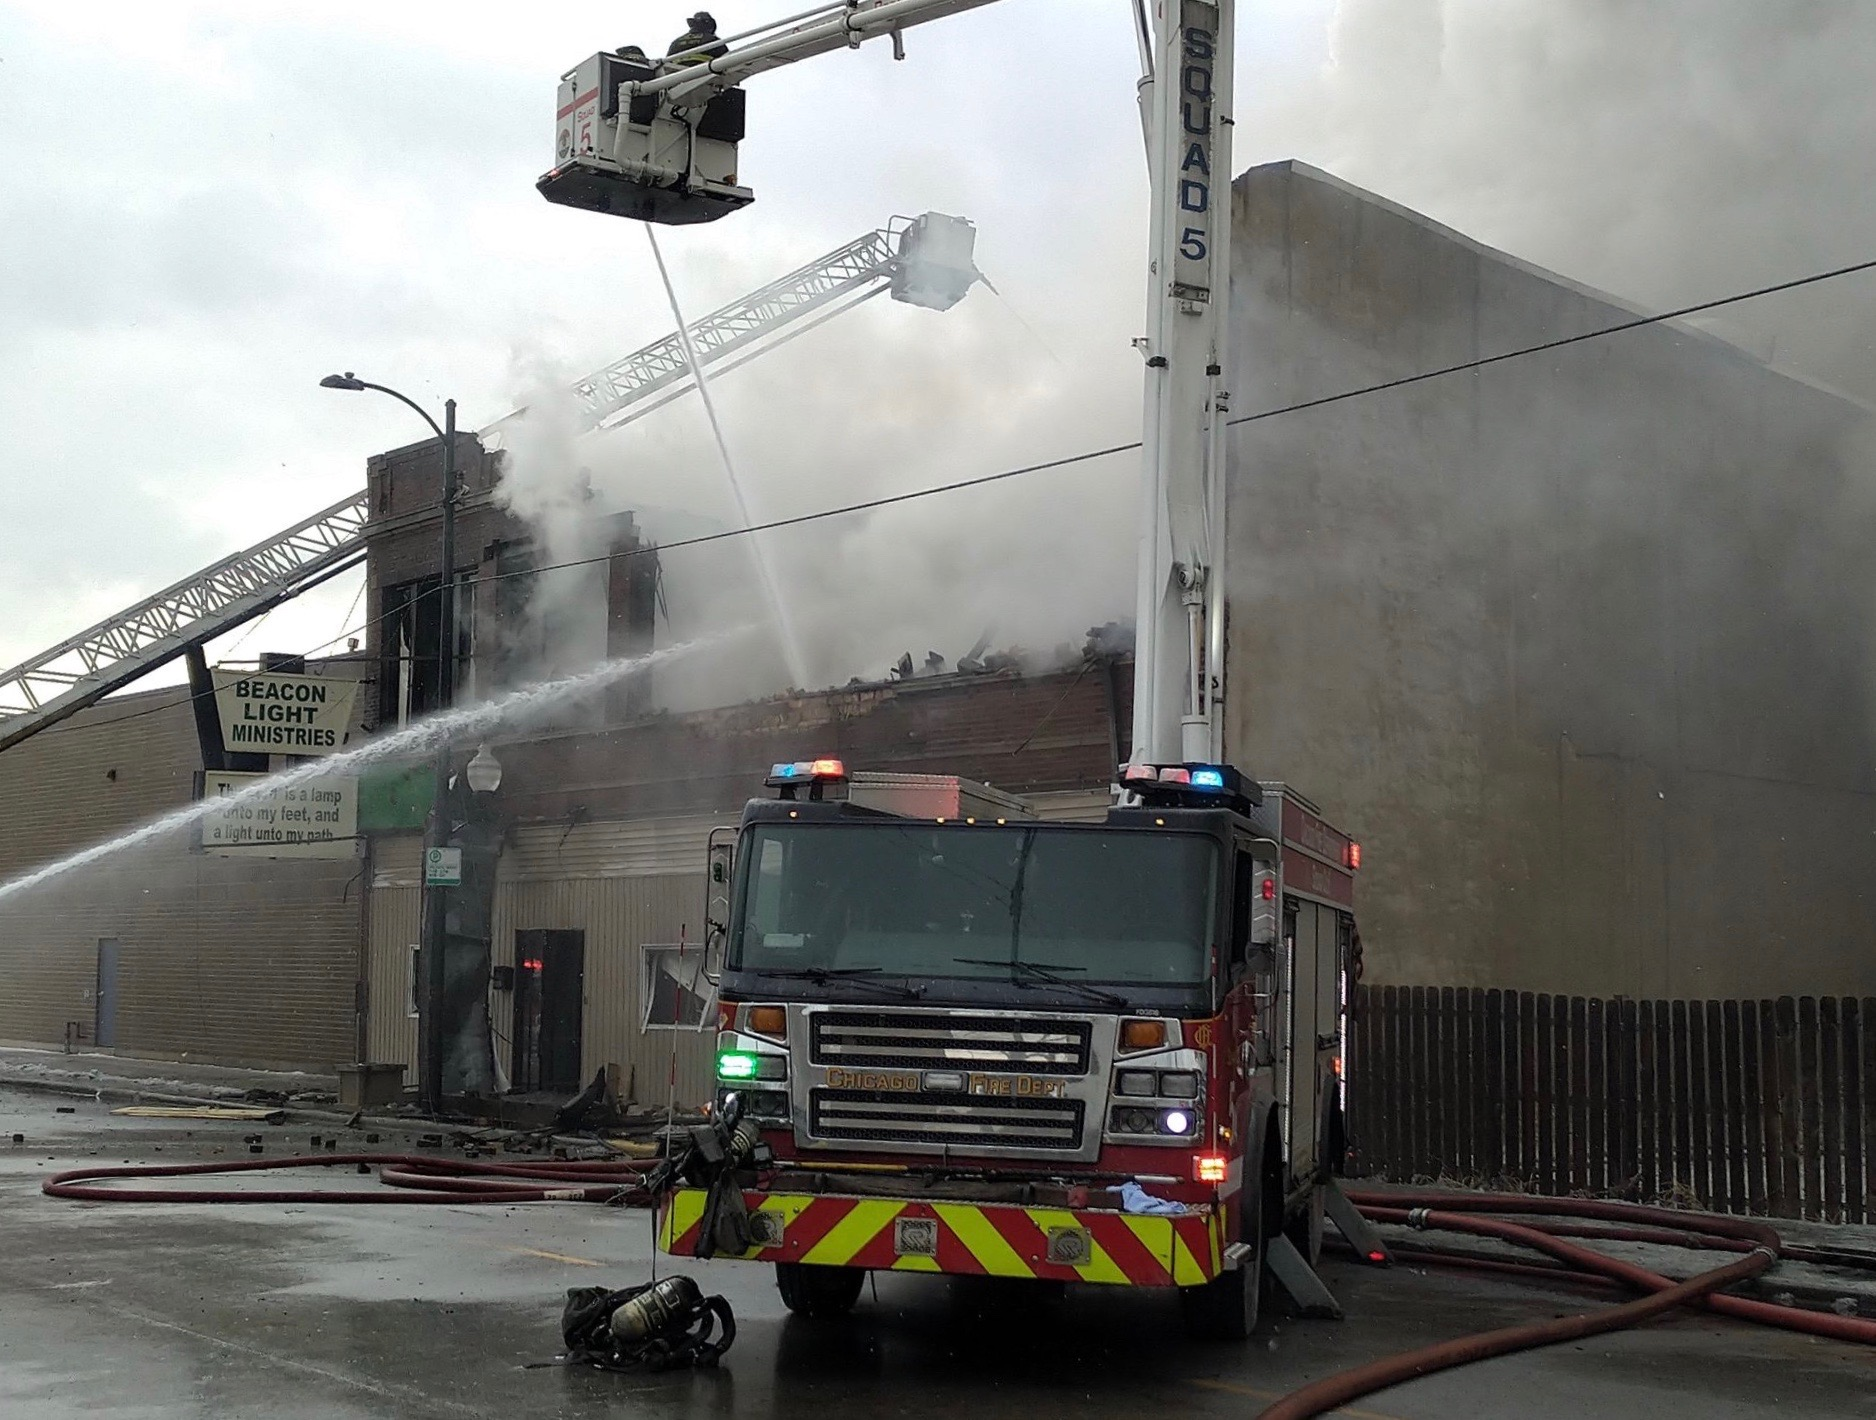 A fire broke out at a church in Roseland